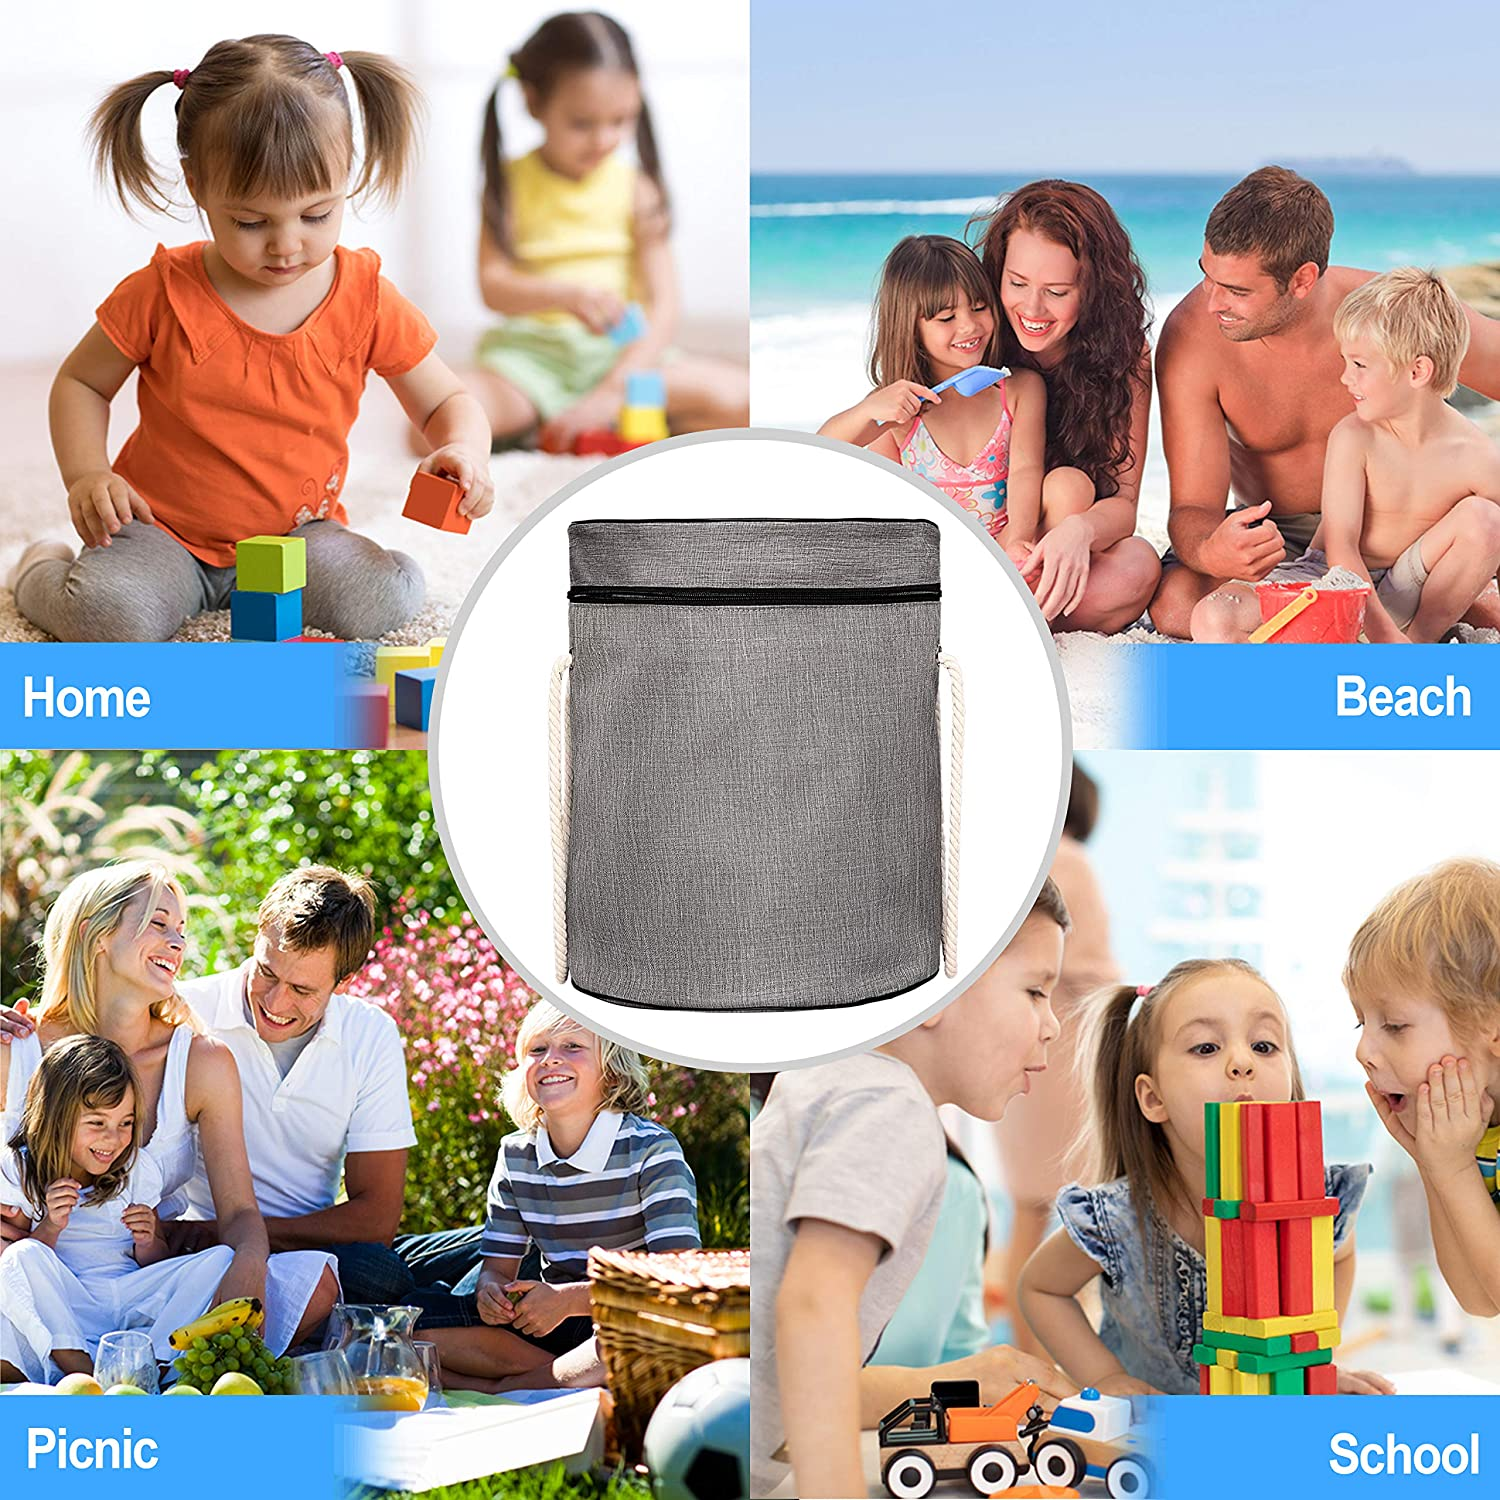 Outdoor Portable Toy Organizer Large Bag with Zipper Gray H:15.75, D:13 Collapsible Bucket UNE Design Toy Storage Basket and Play Mat Activity Mat Swoop Bag